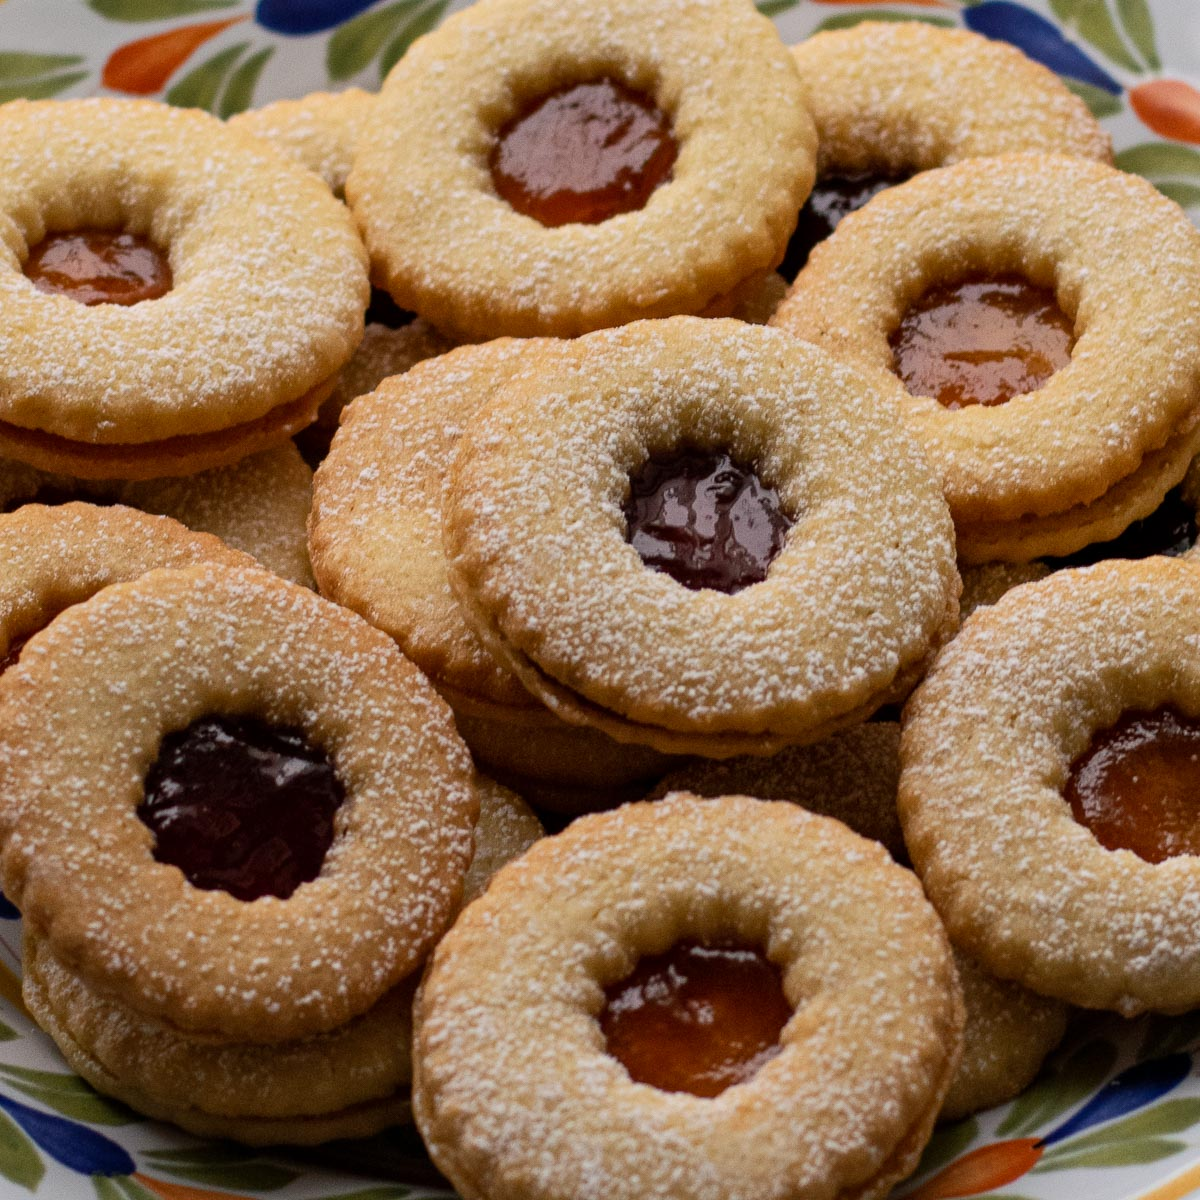 Jammy Dodgers on a patterned plate